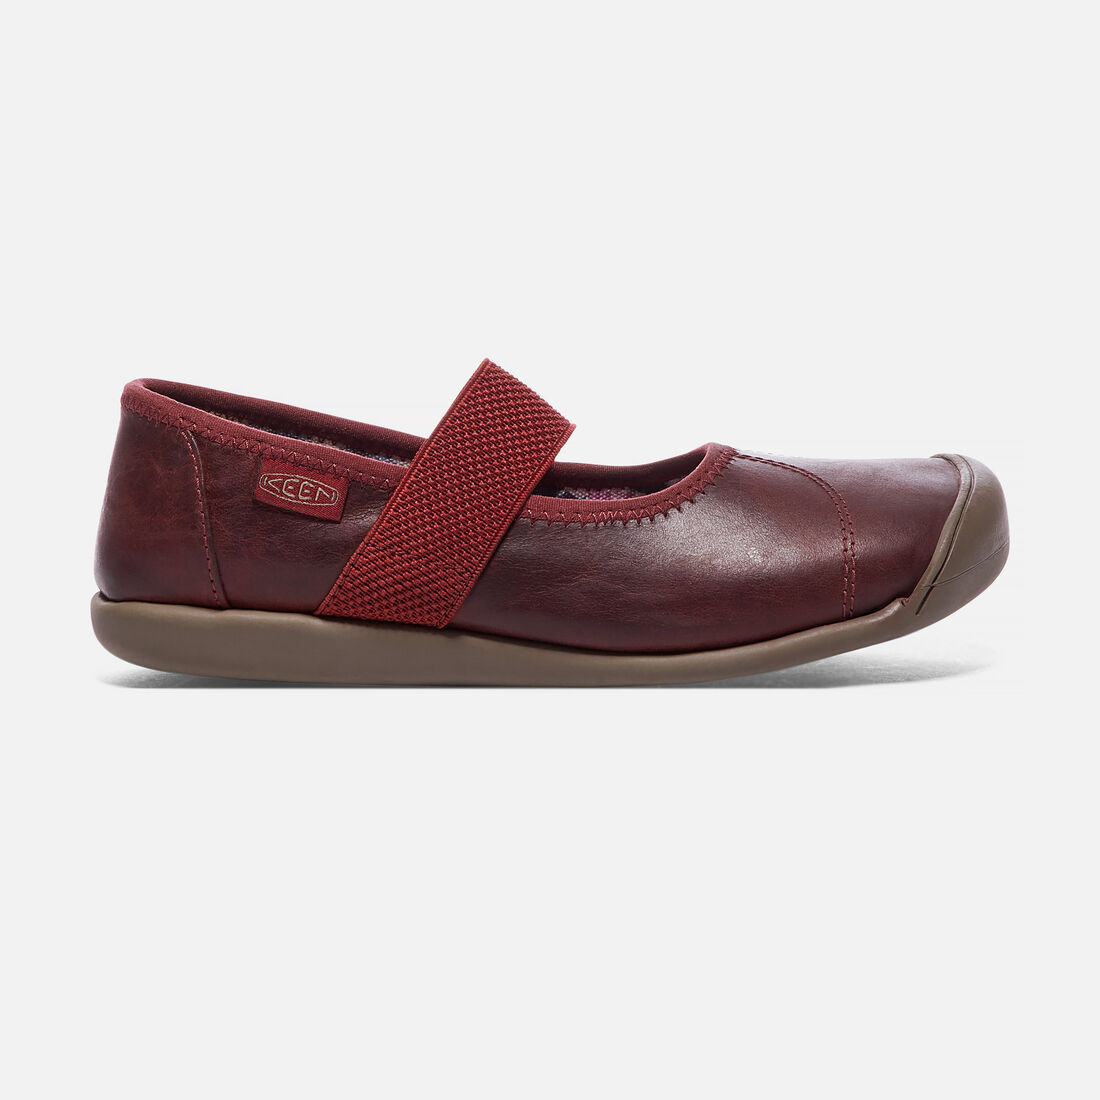 Women's Sienna Leather Mary Jane in Cinnamon Roll/Syrah - large view.